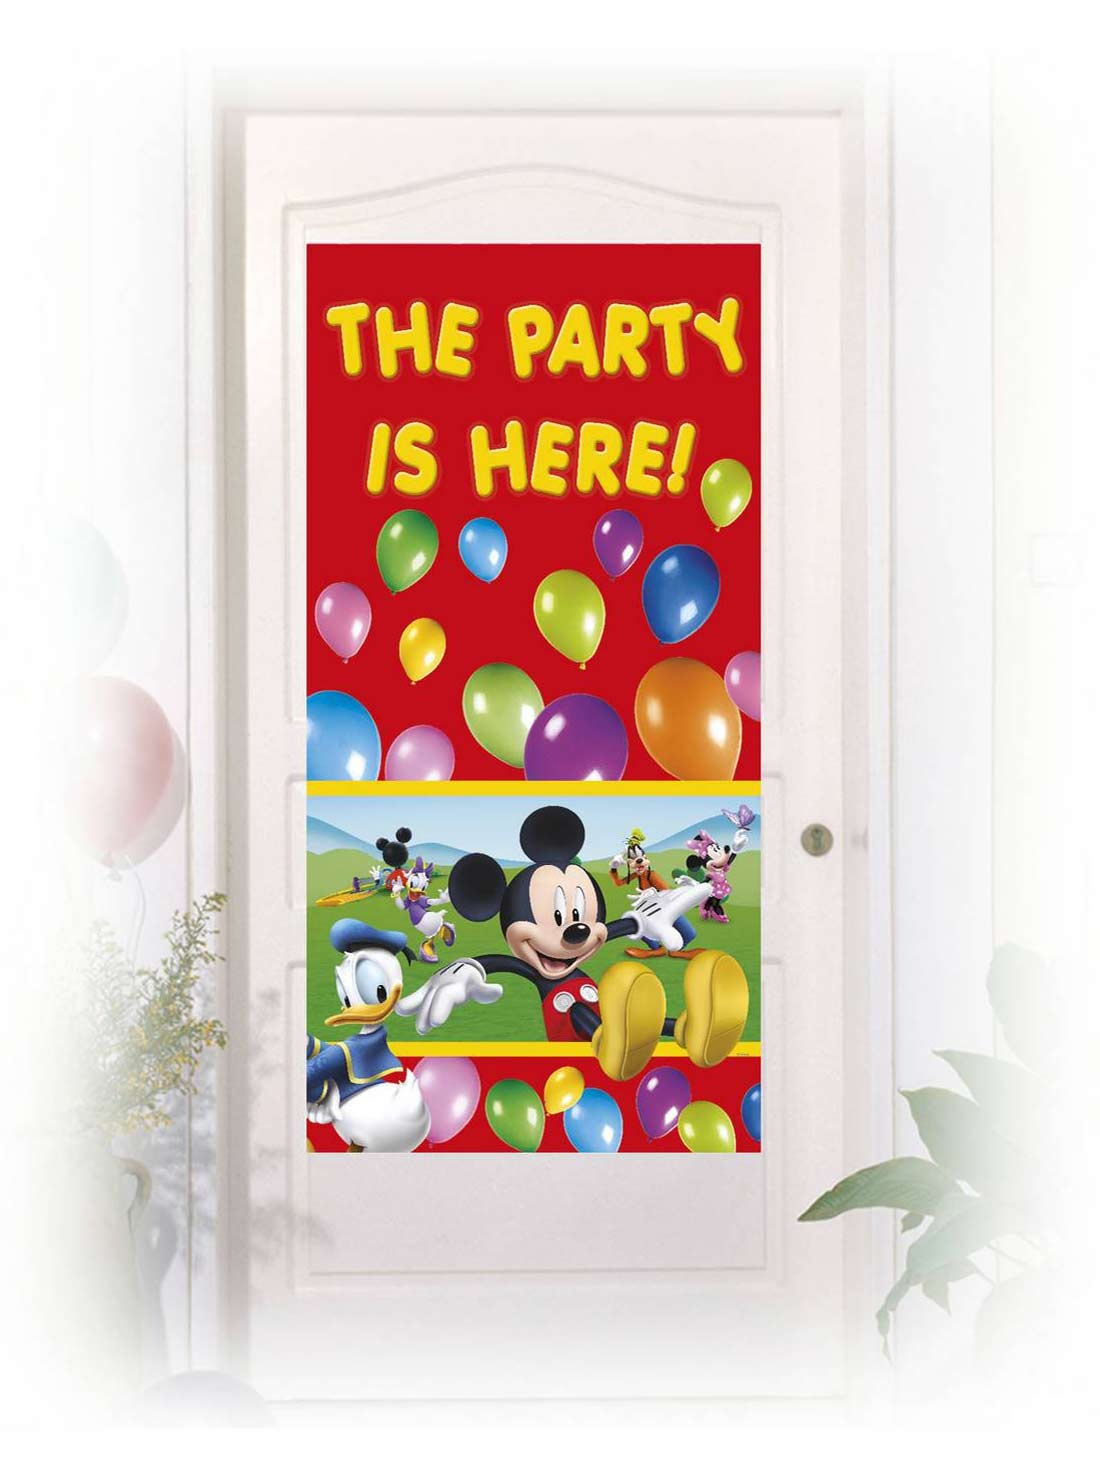 D coration de porte mickey mouse d coration anniversaire et f tes th me sur vegaoo party - Decoration mickey anniversaire ...